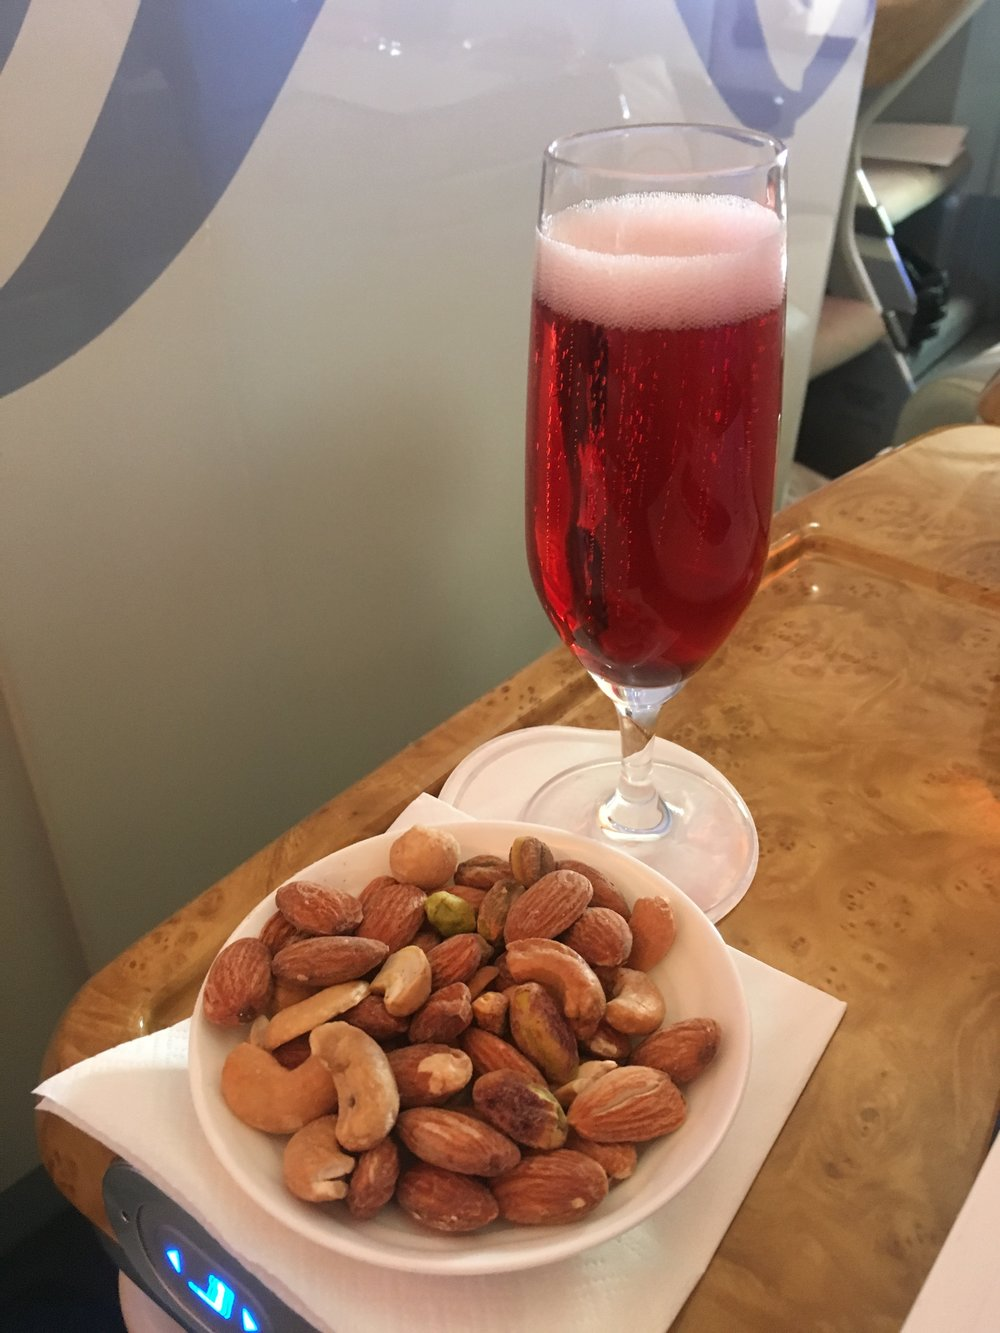 A Kir Royal and some nuts